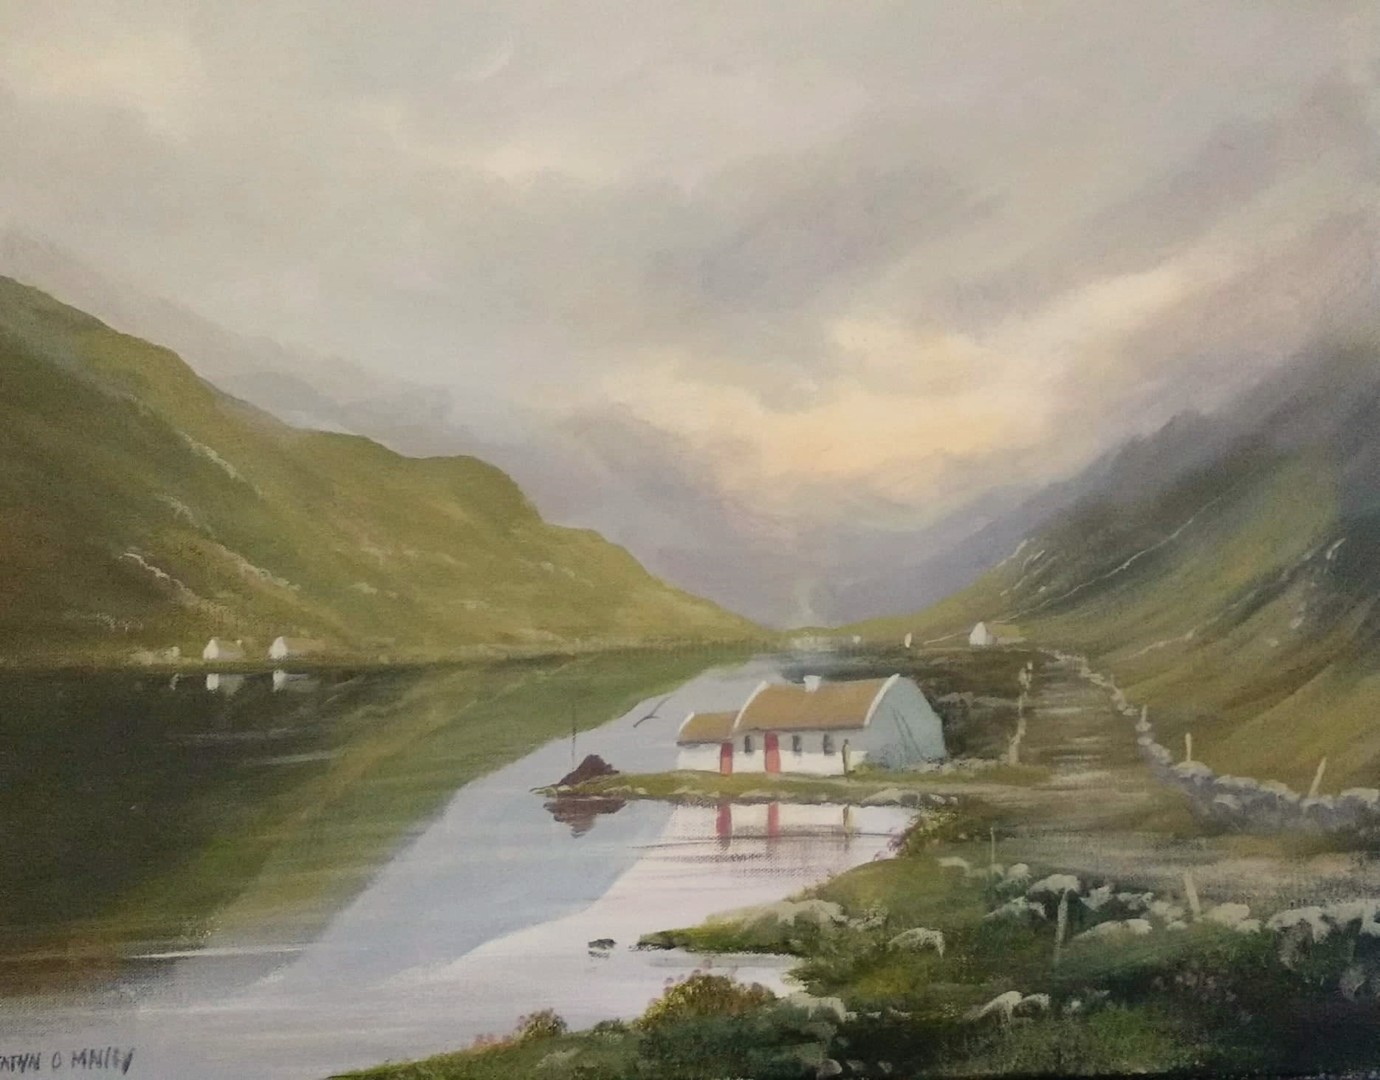 Cathal O Malley - connemara cottages  july